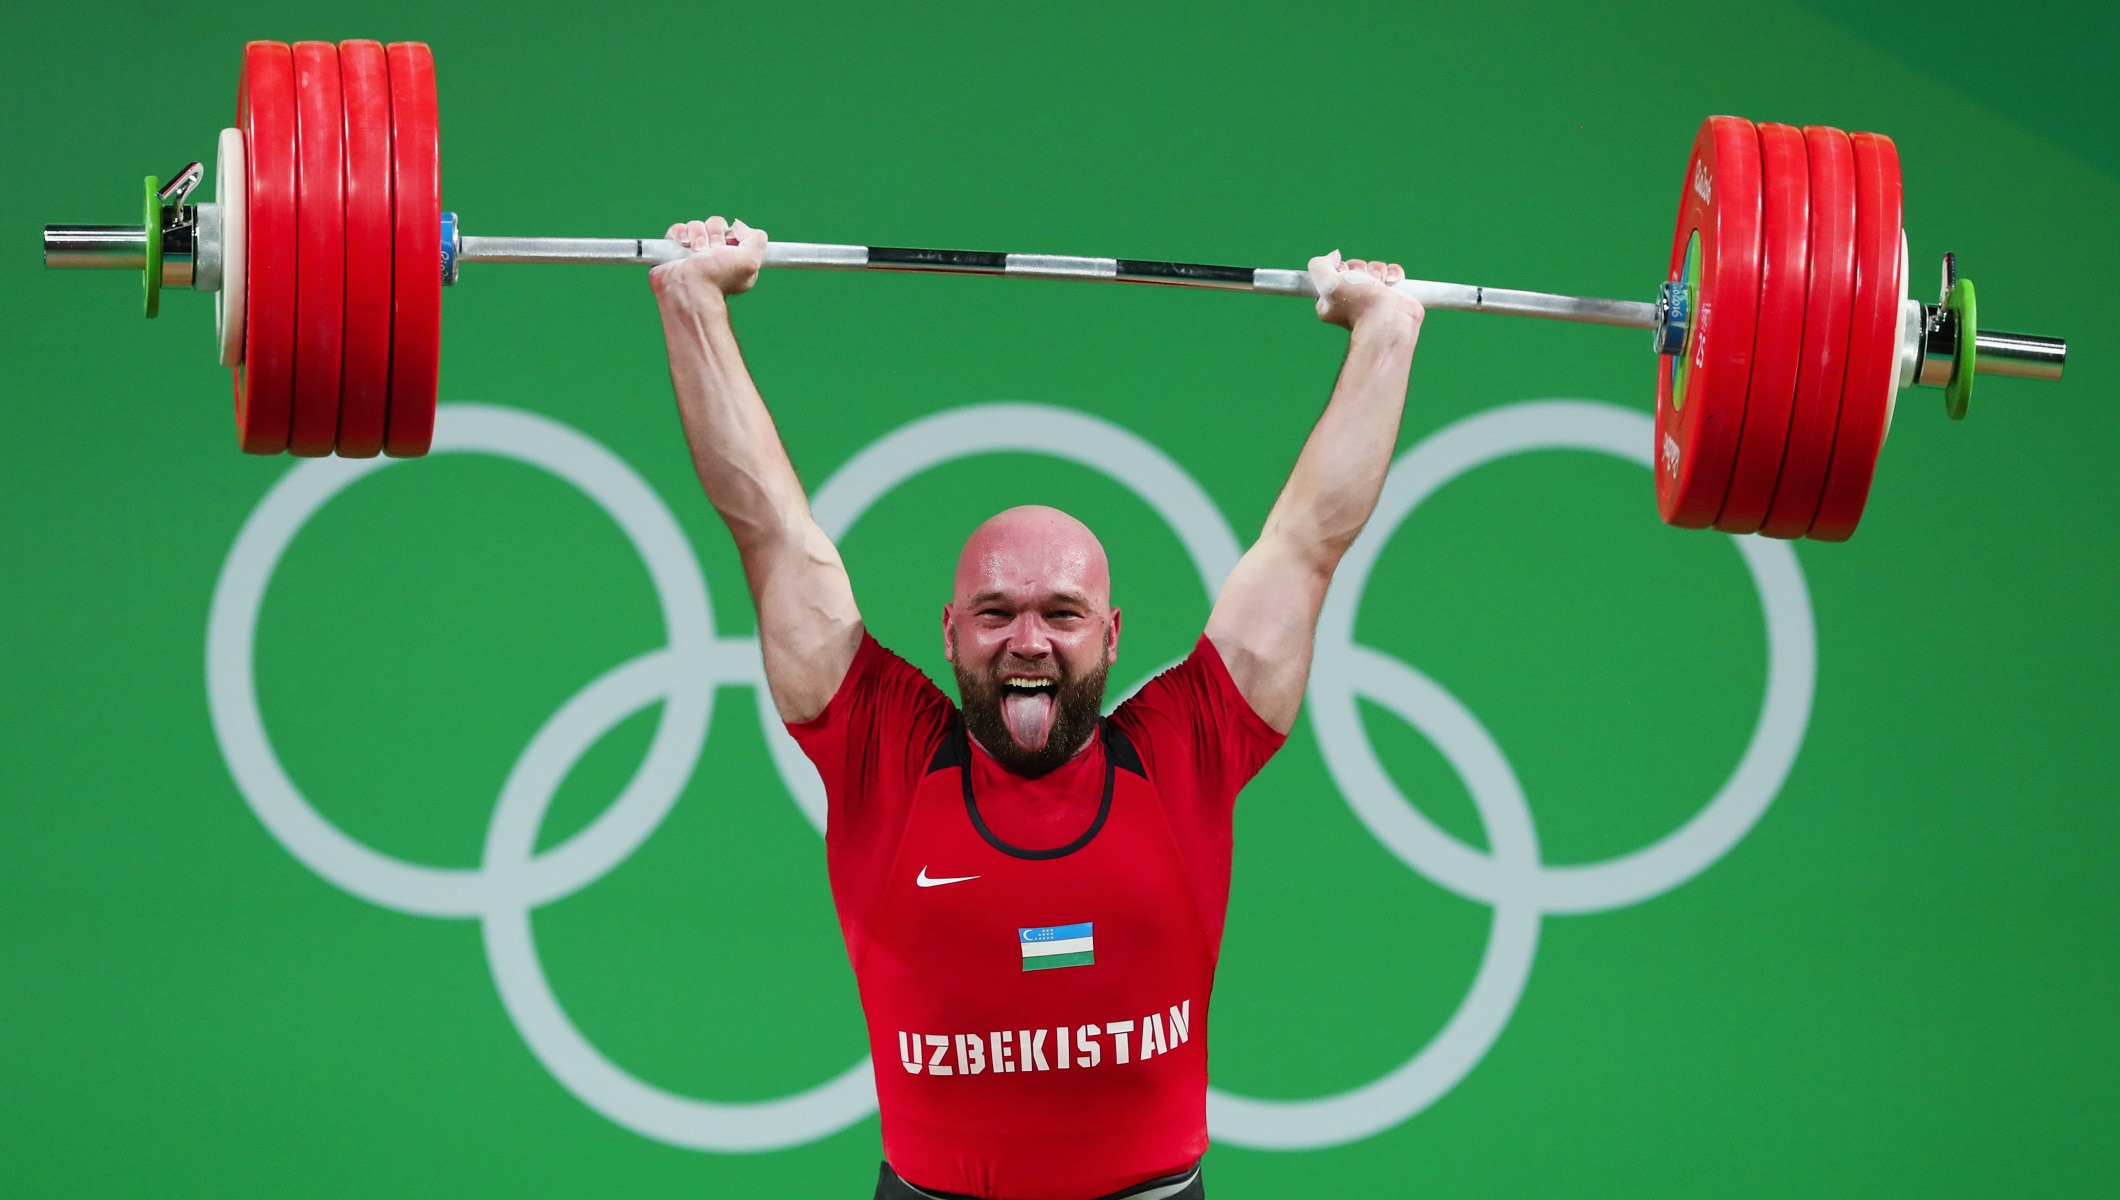 Weightlifting - Summer Olympic Sport